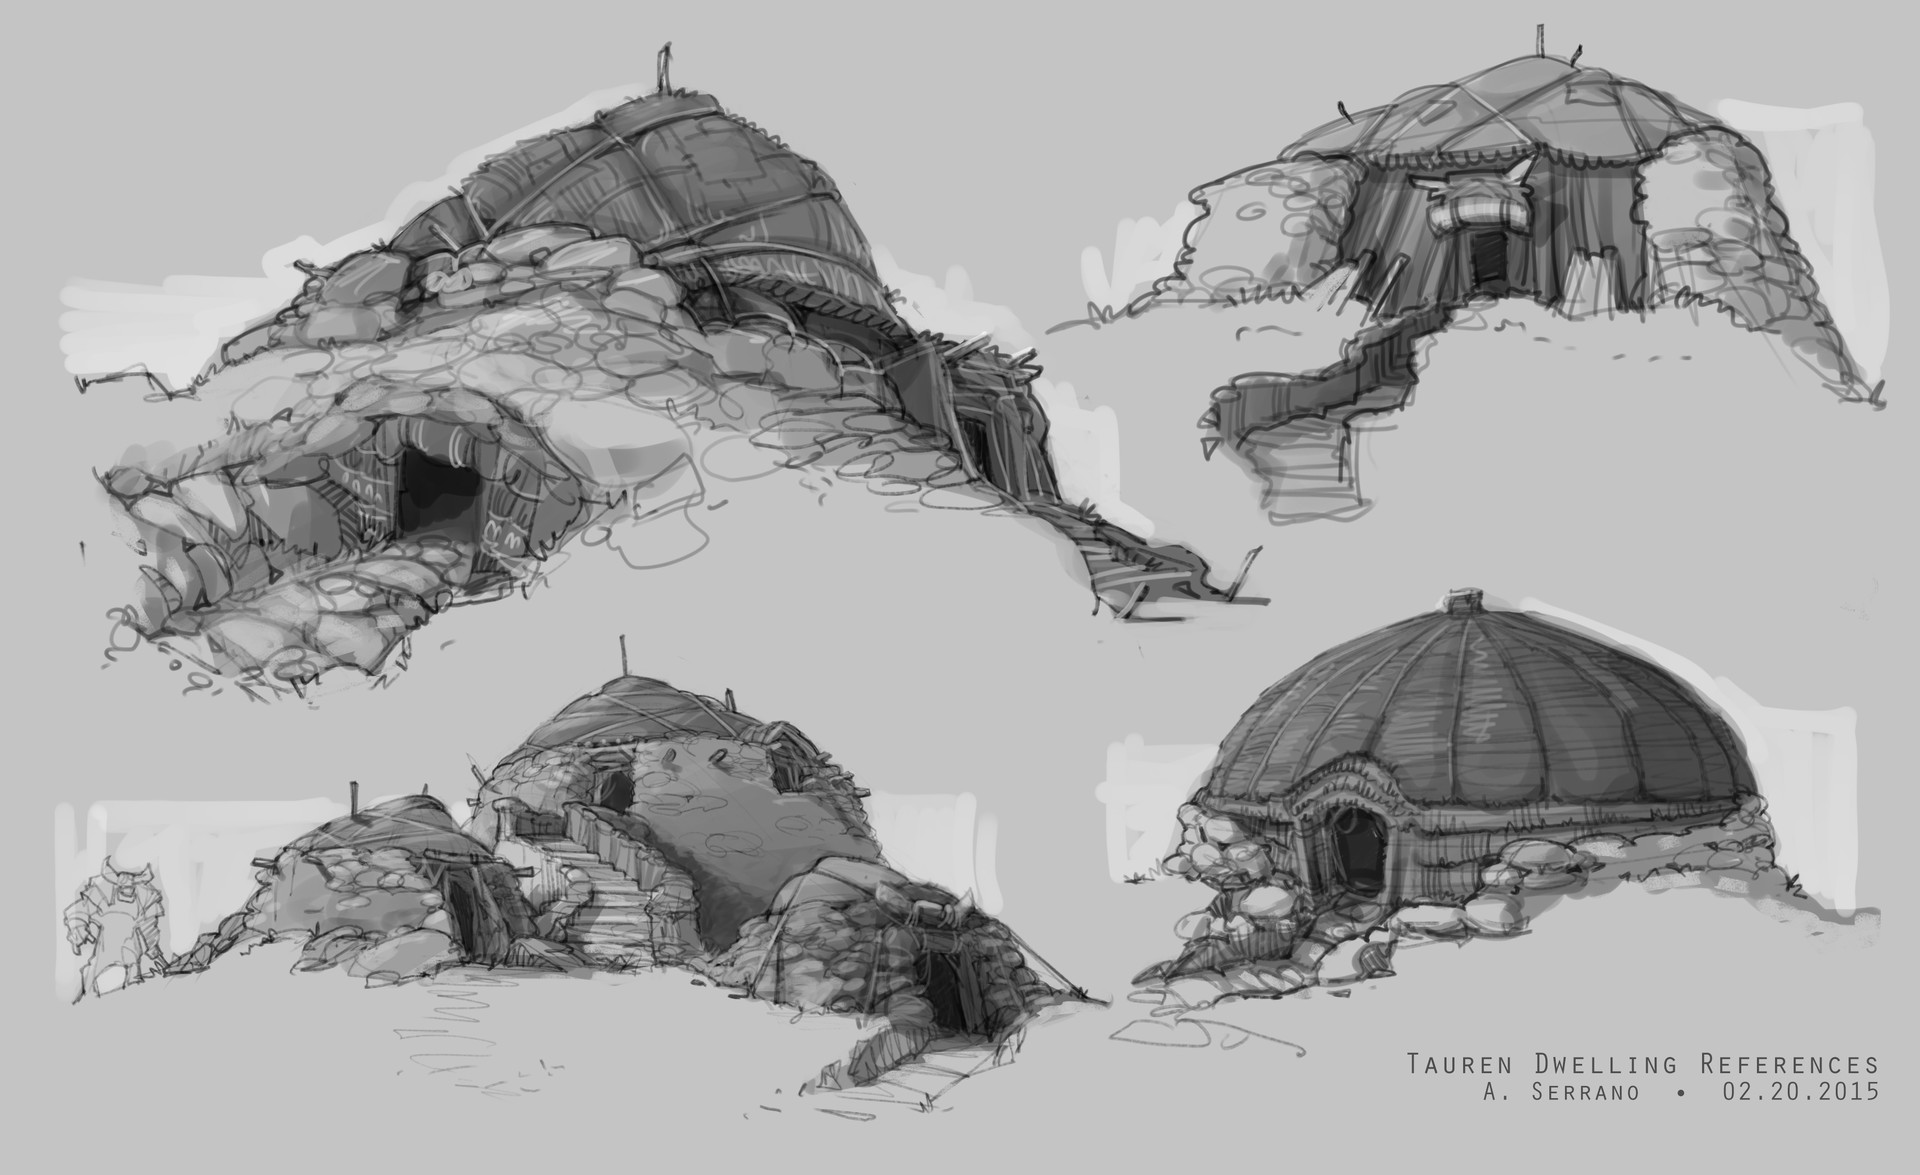 Dwelling concepts